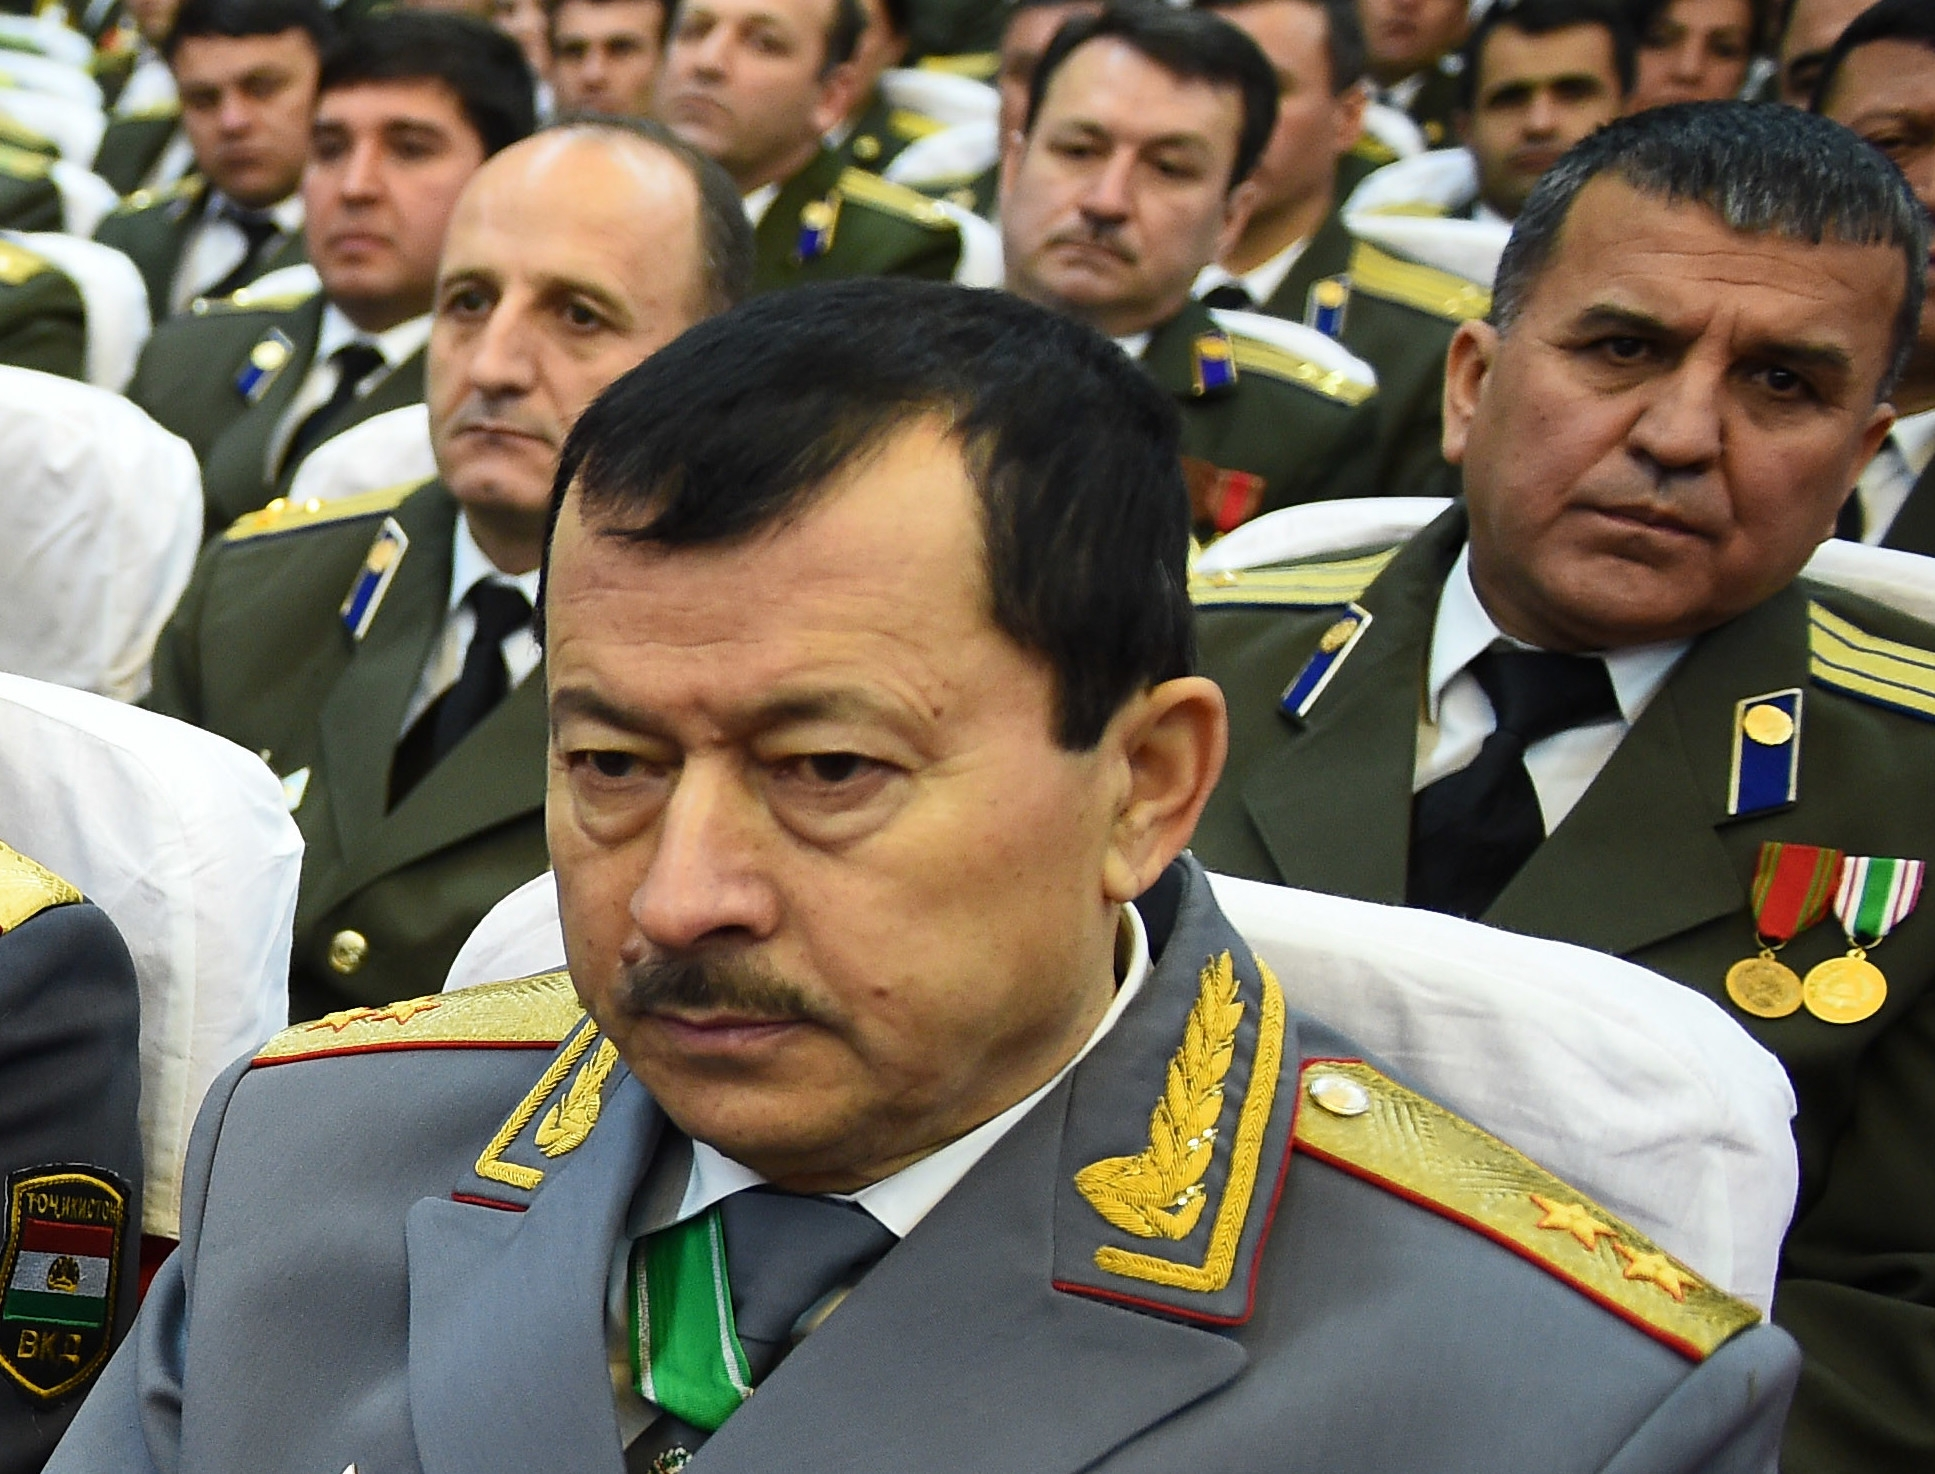 Yatimov, seen in 2017. (Photo: Presidential administration press service)